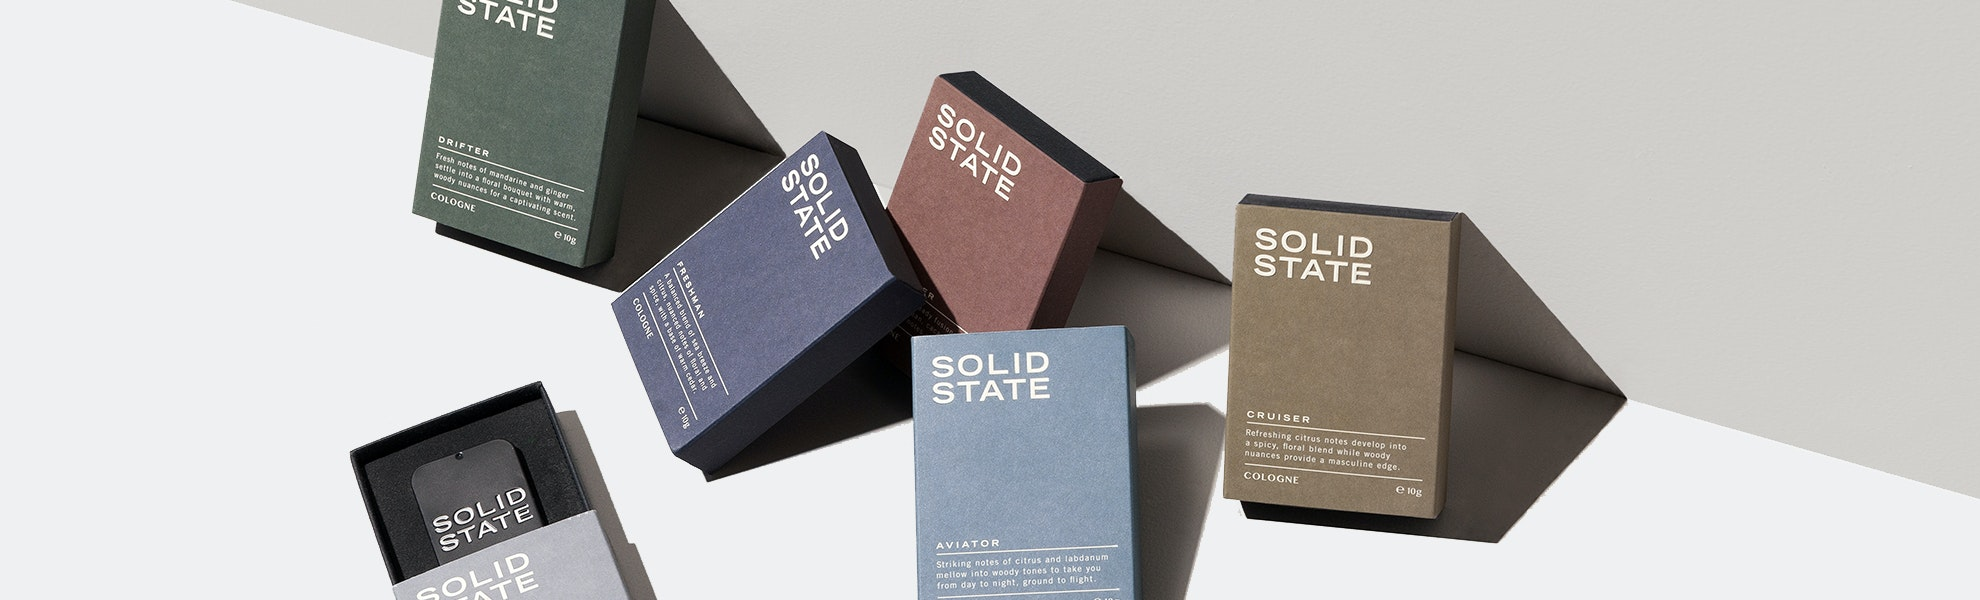 Solid State Solid Colognes